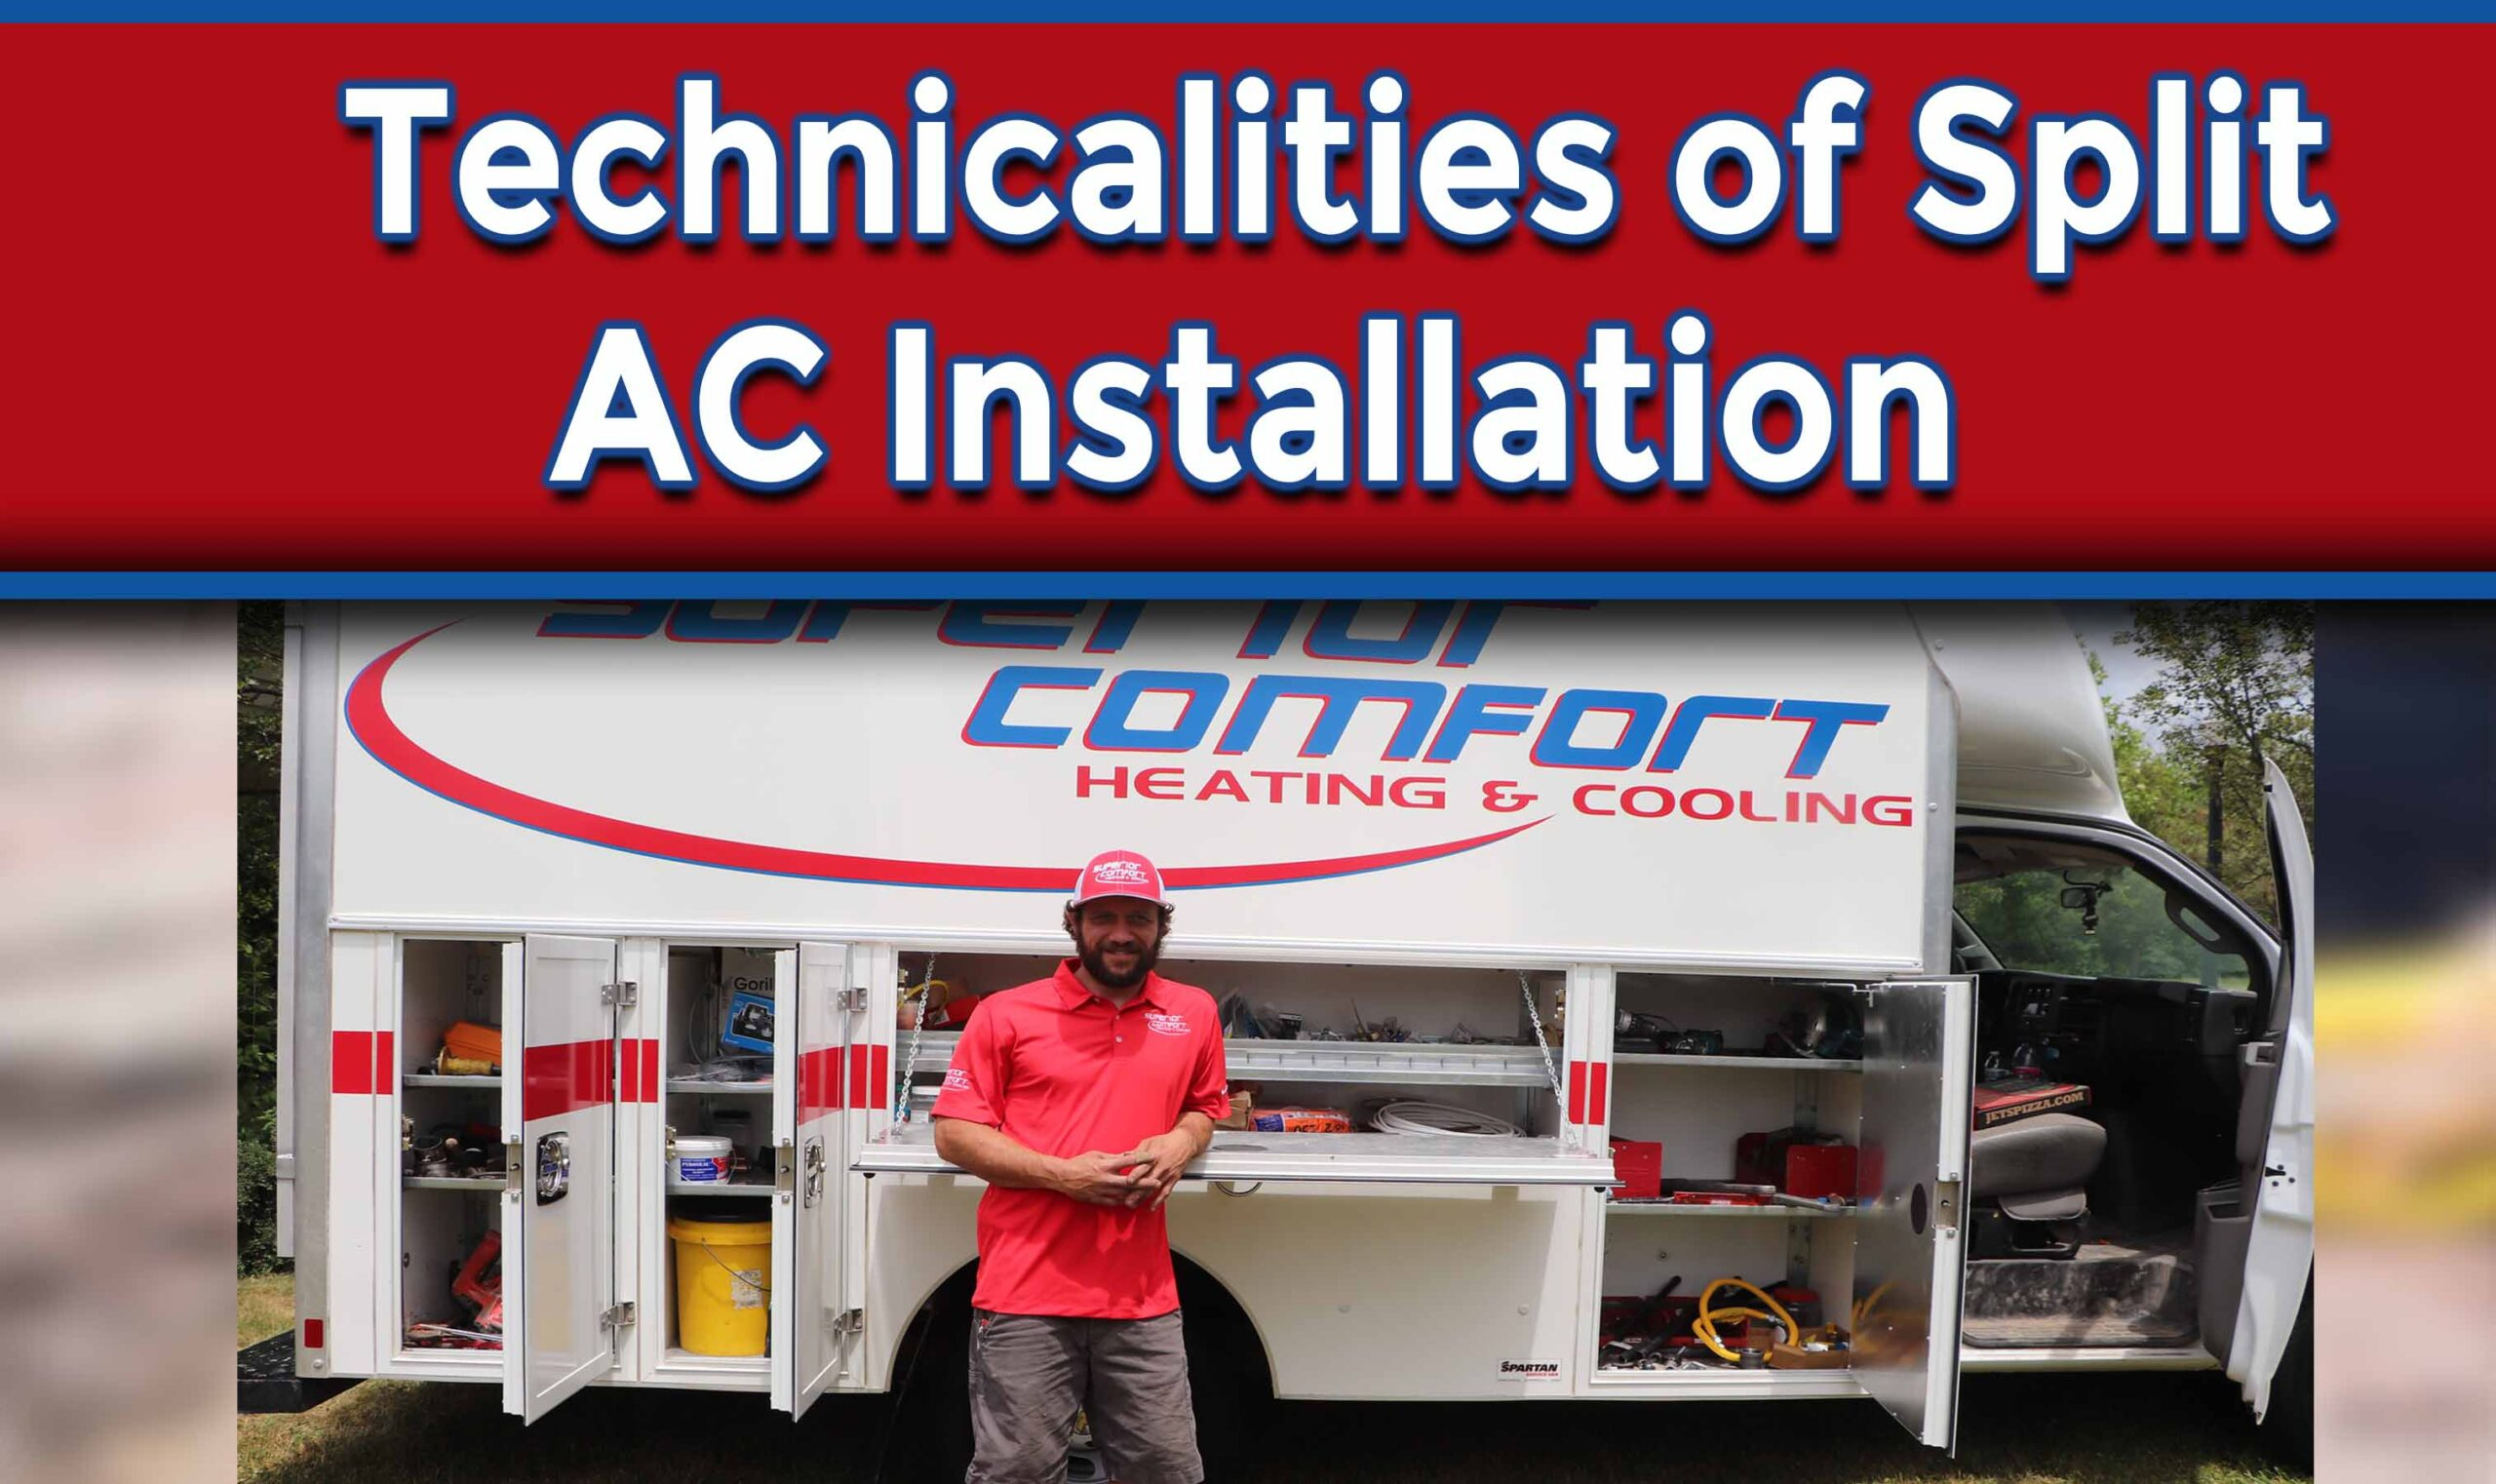 Technicalities of Split AC Installation